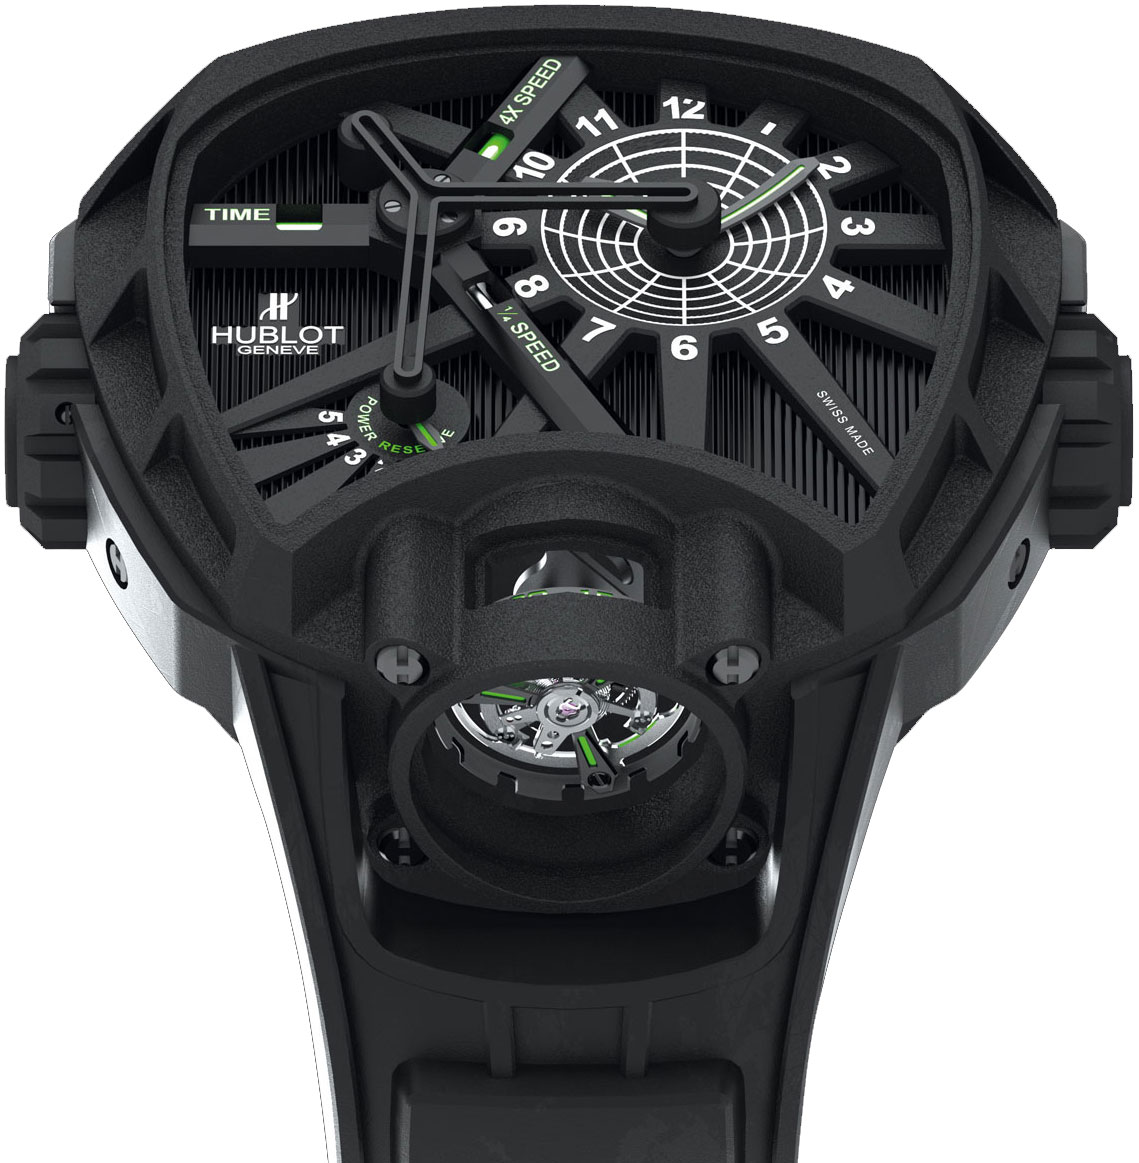 Hublot Spider Watch